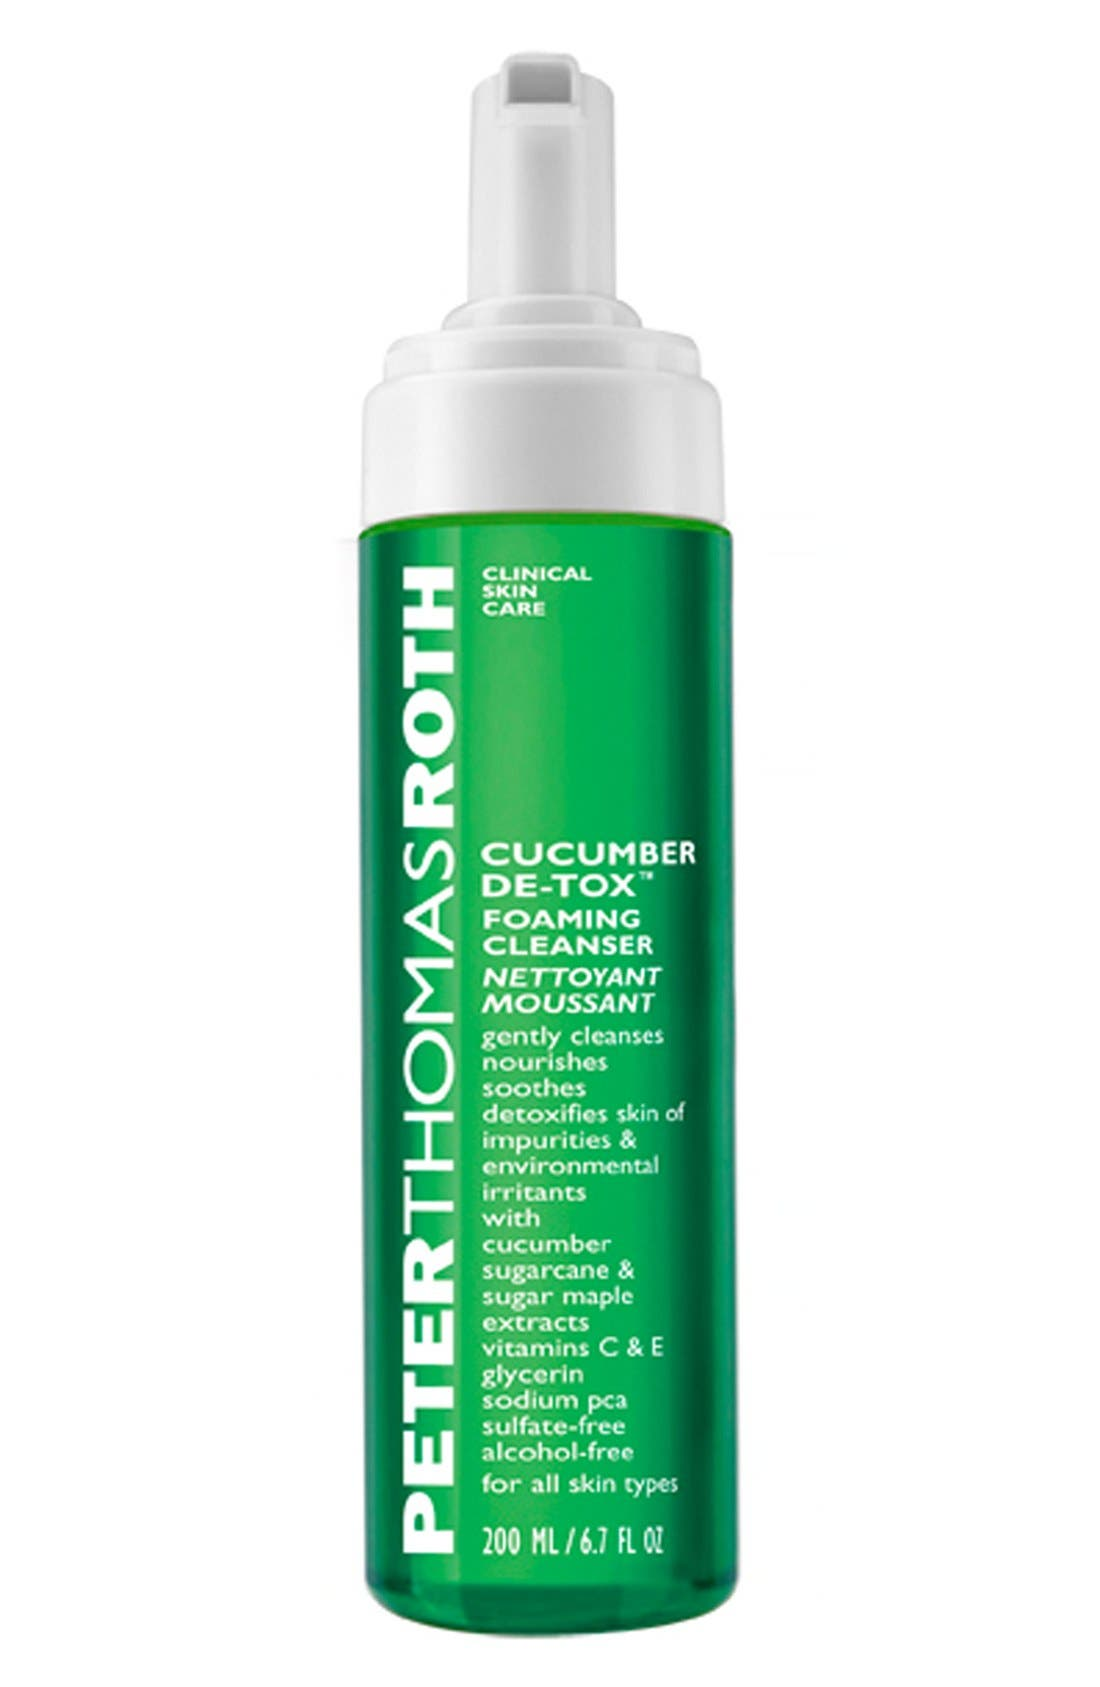 Peter Thomas Roth Cucumber De-tox™ Foaming Cleanser